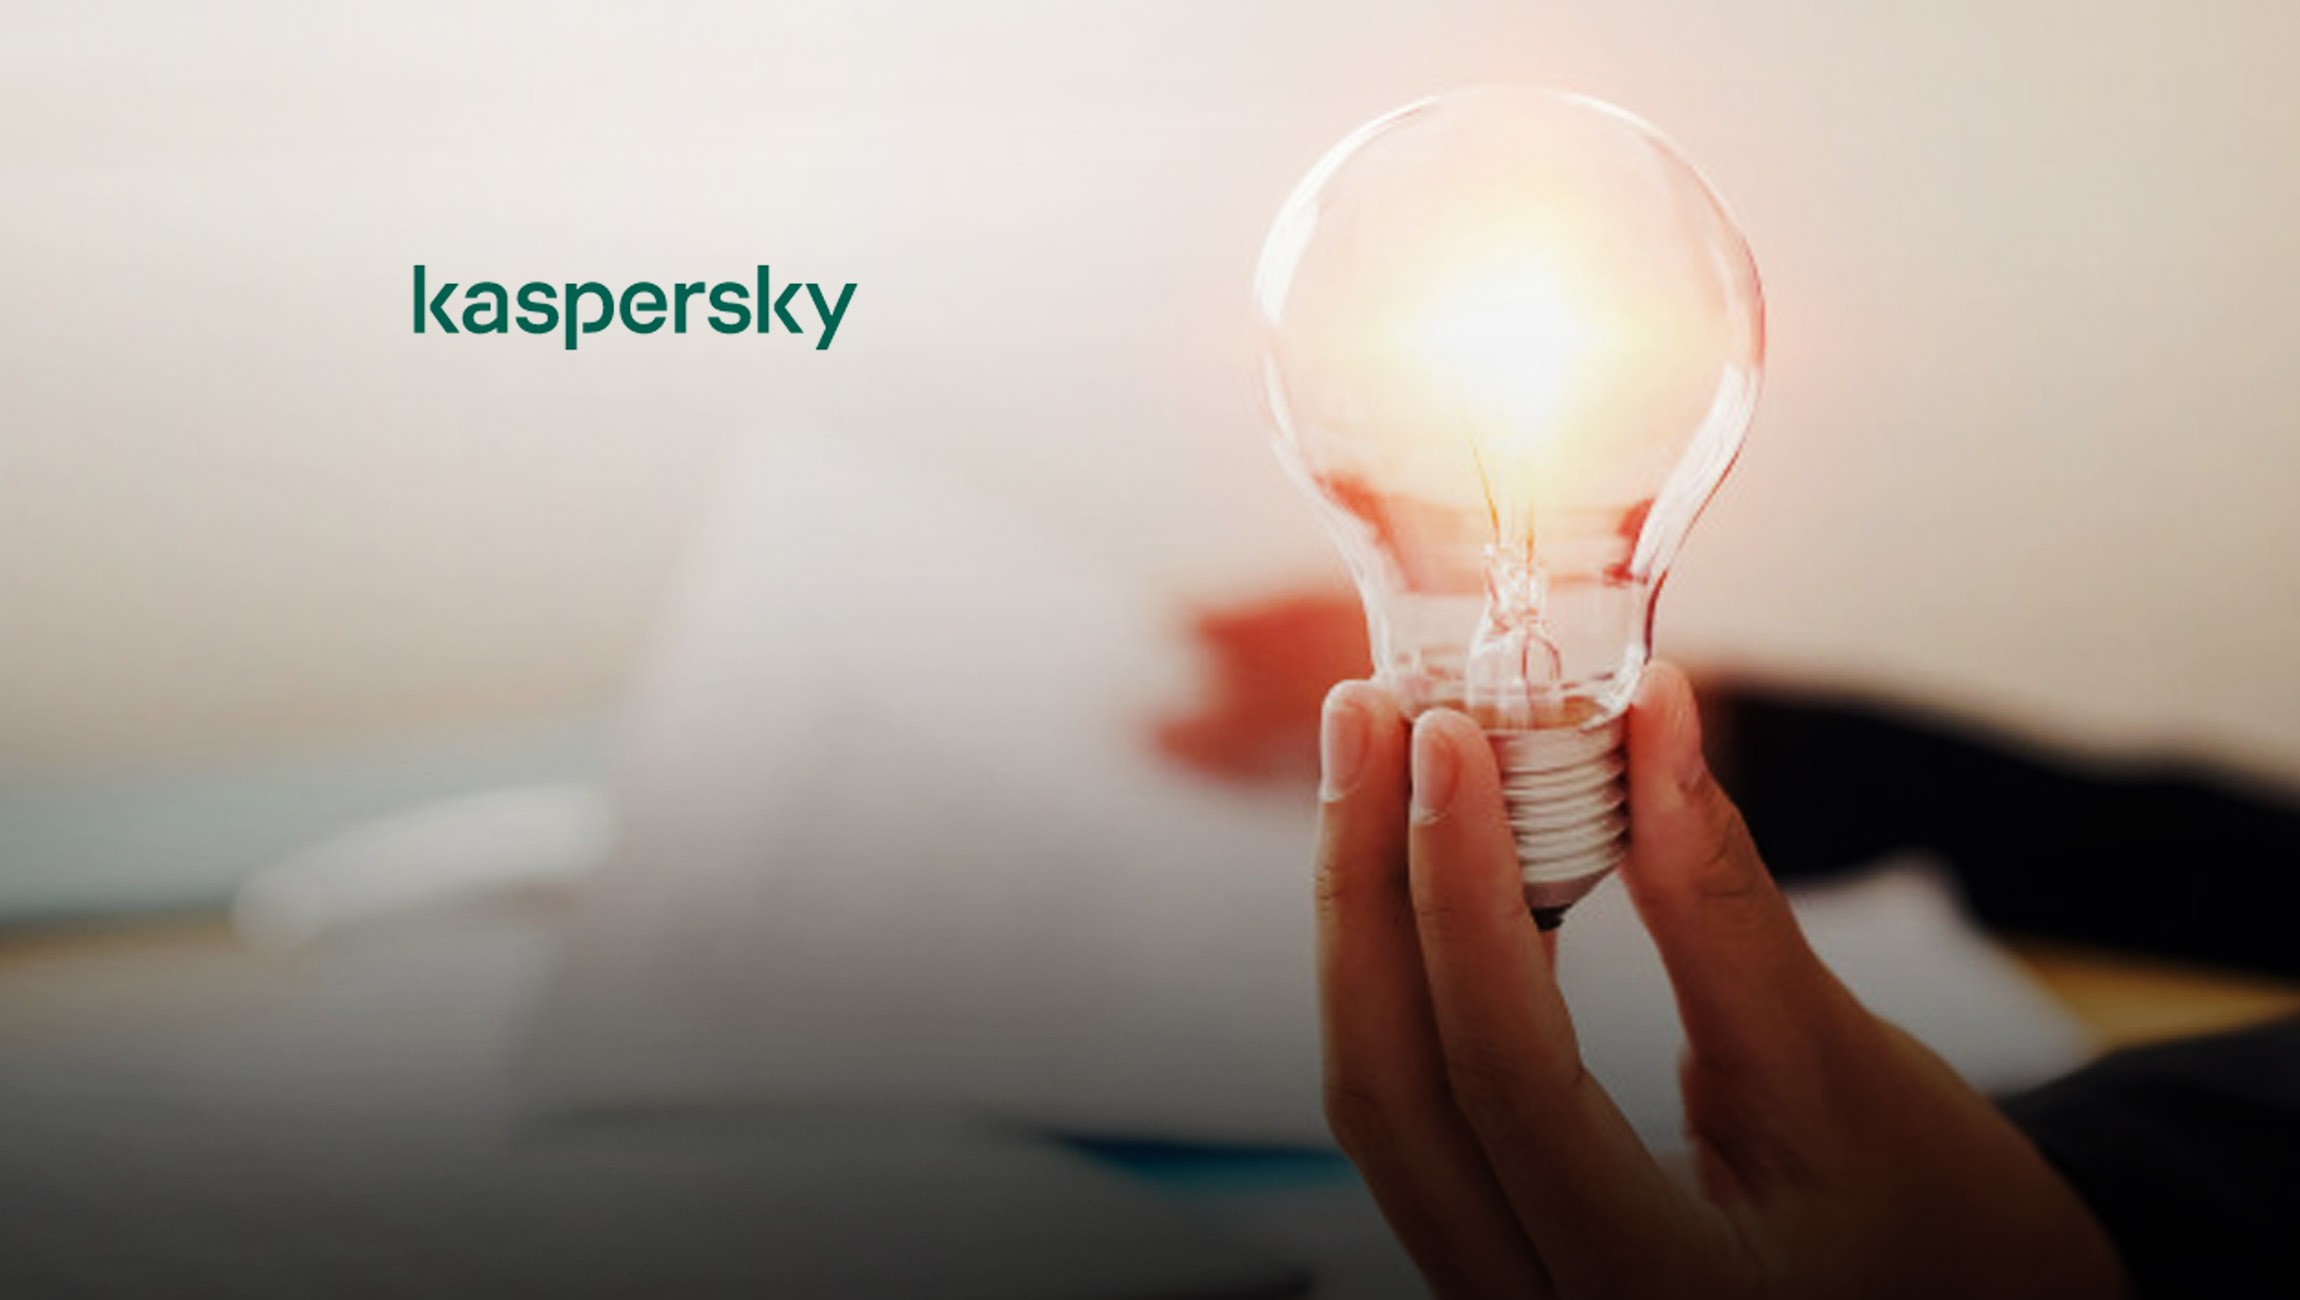 Kaspersky Recognized as a Highly Ranked Vendor in 2020 Gartner Peer Insights Customers' Choice for Endpoint Detection & Response Solutions